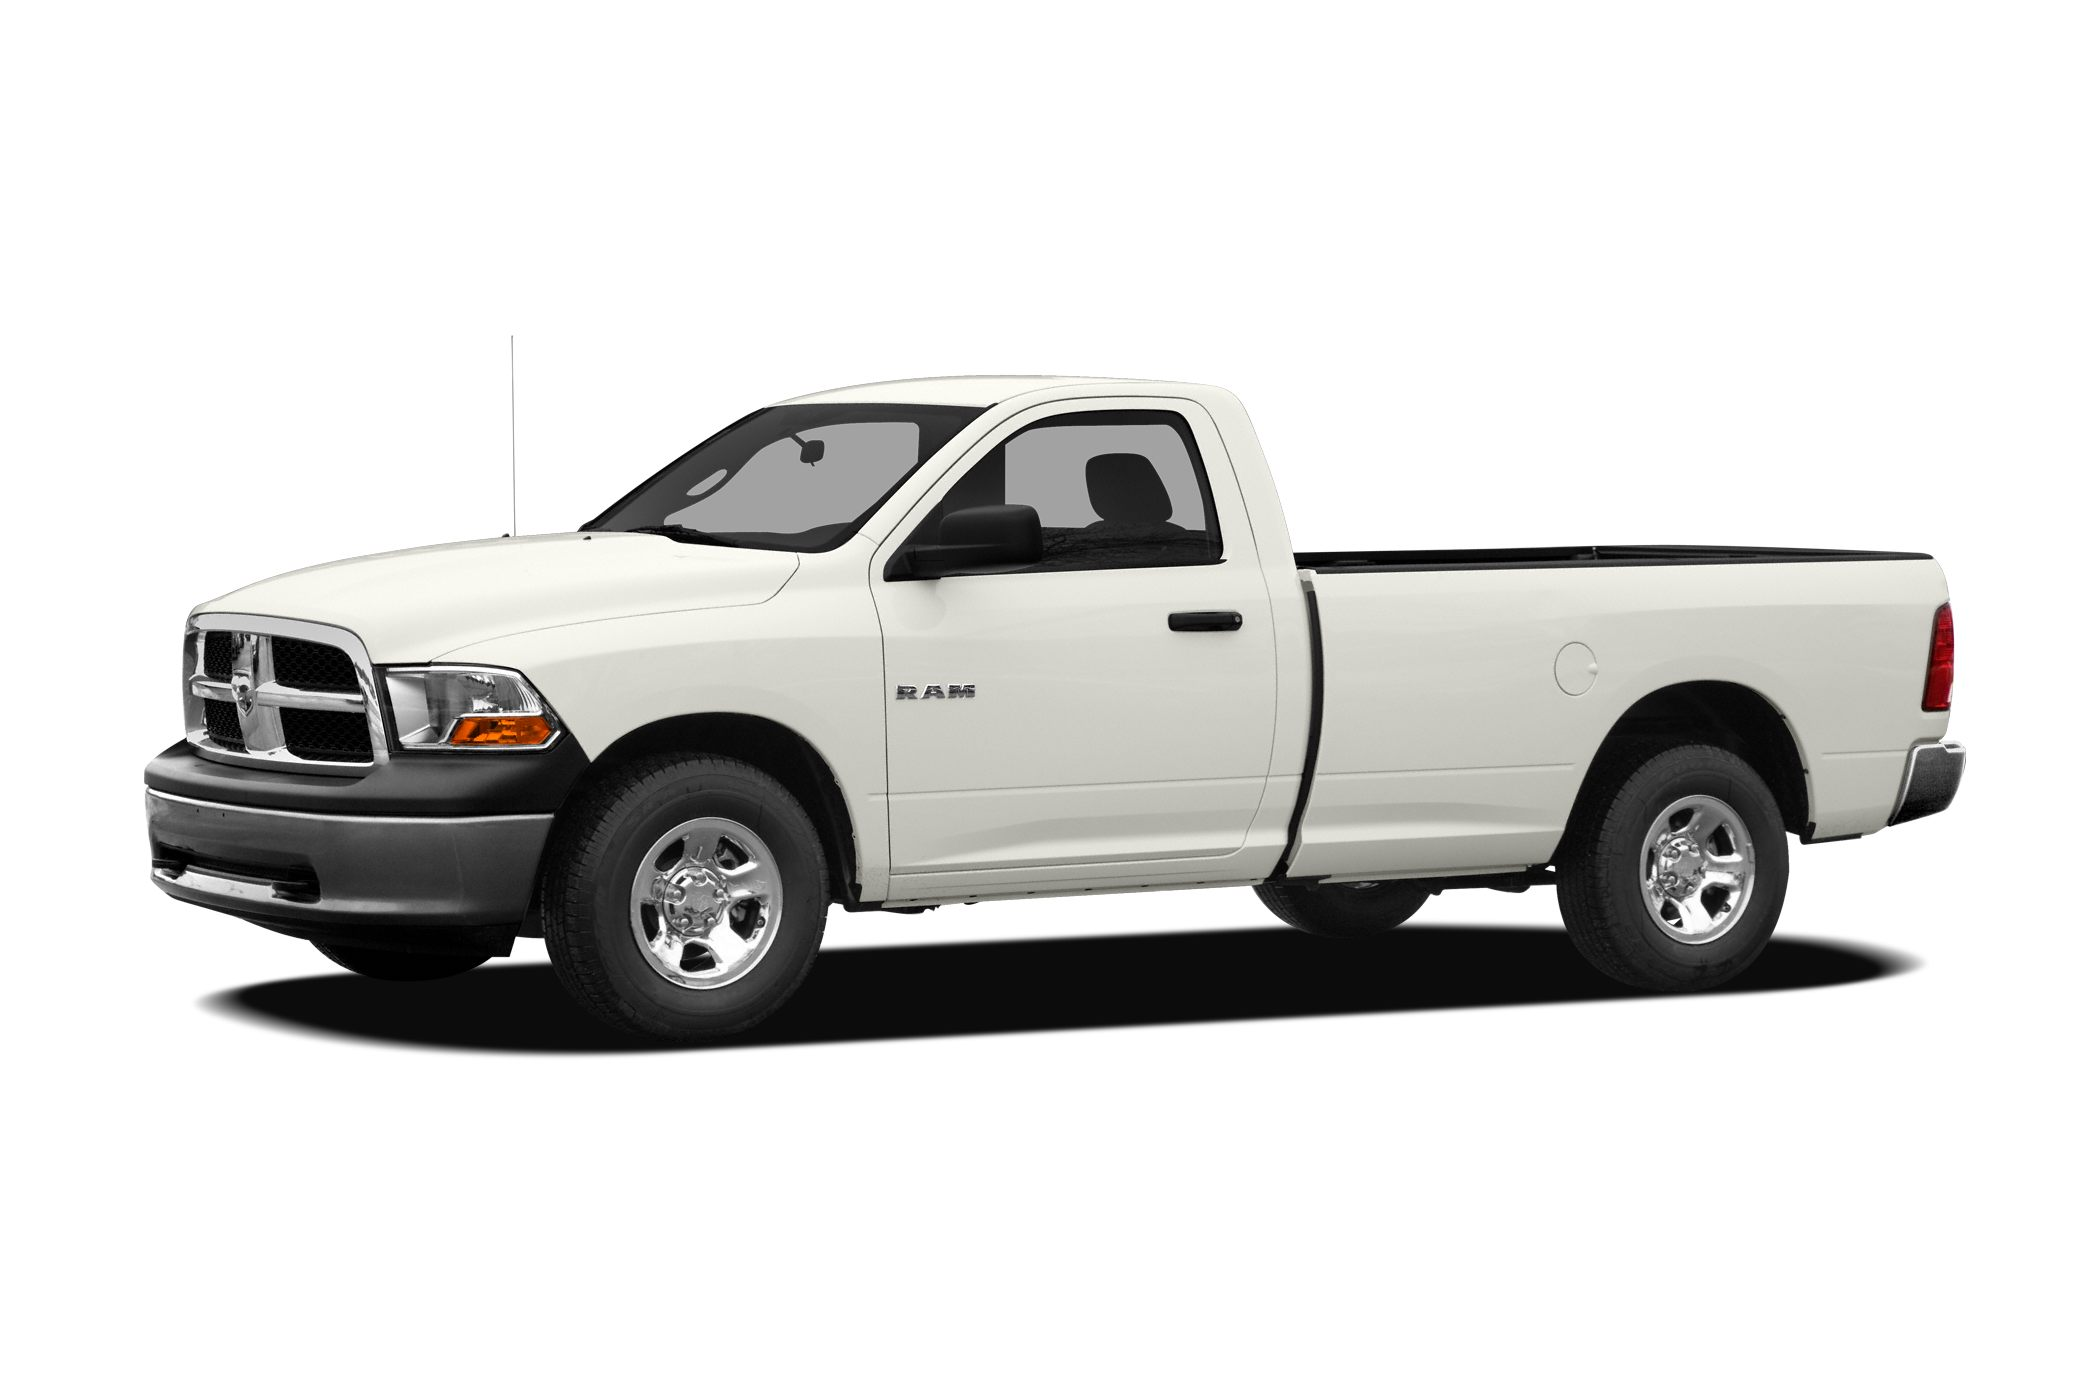 2011 Dodge Ram 1500 ST Regular Cab Pickup for sale in Kilgore for $16,354 with 26,419 miles.